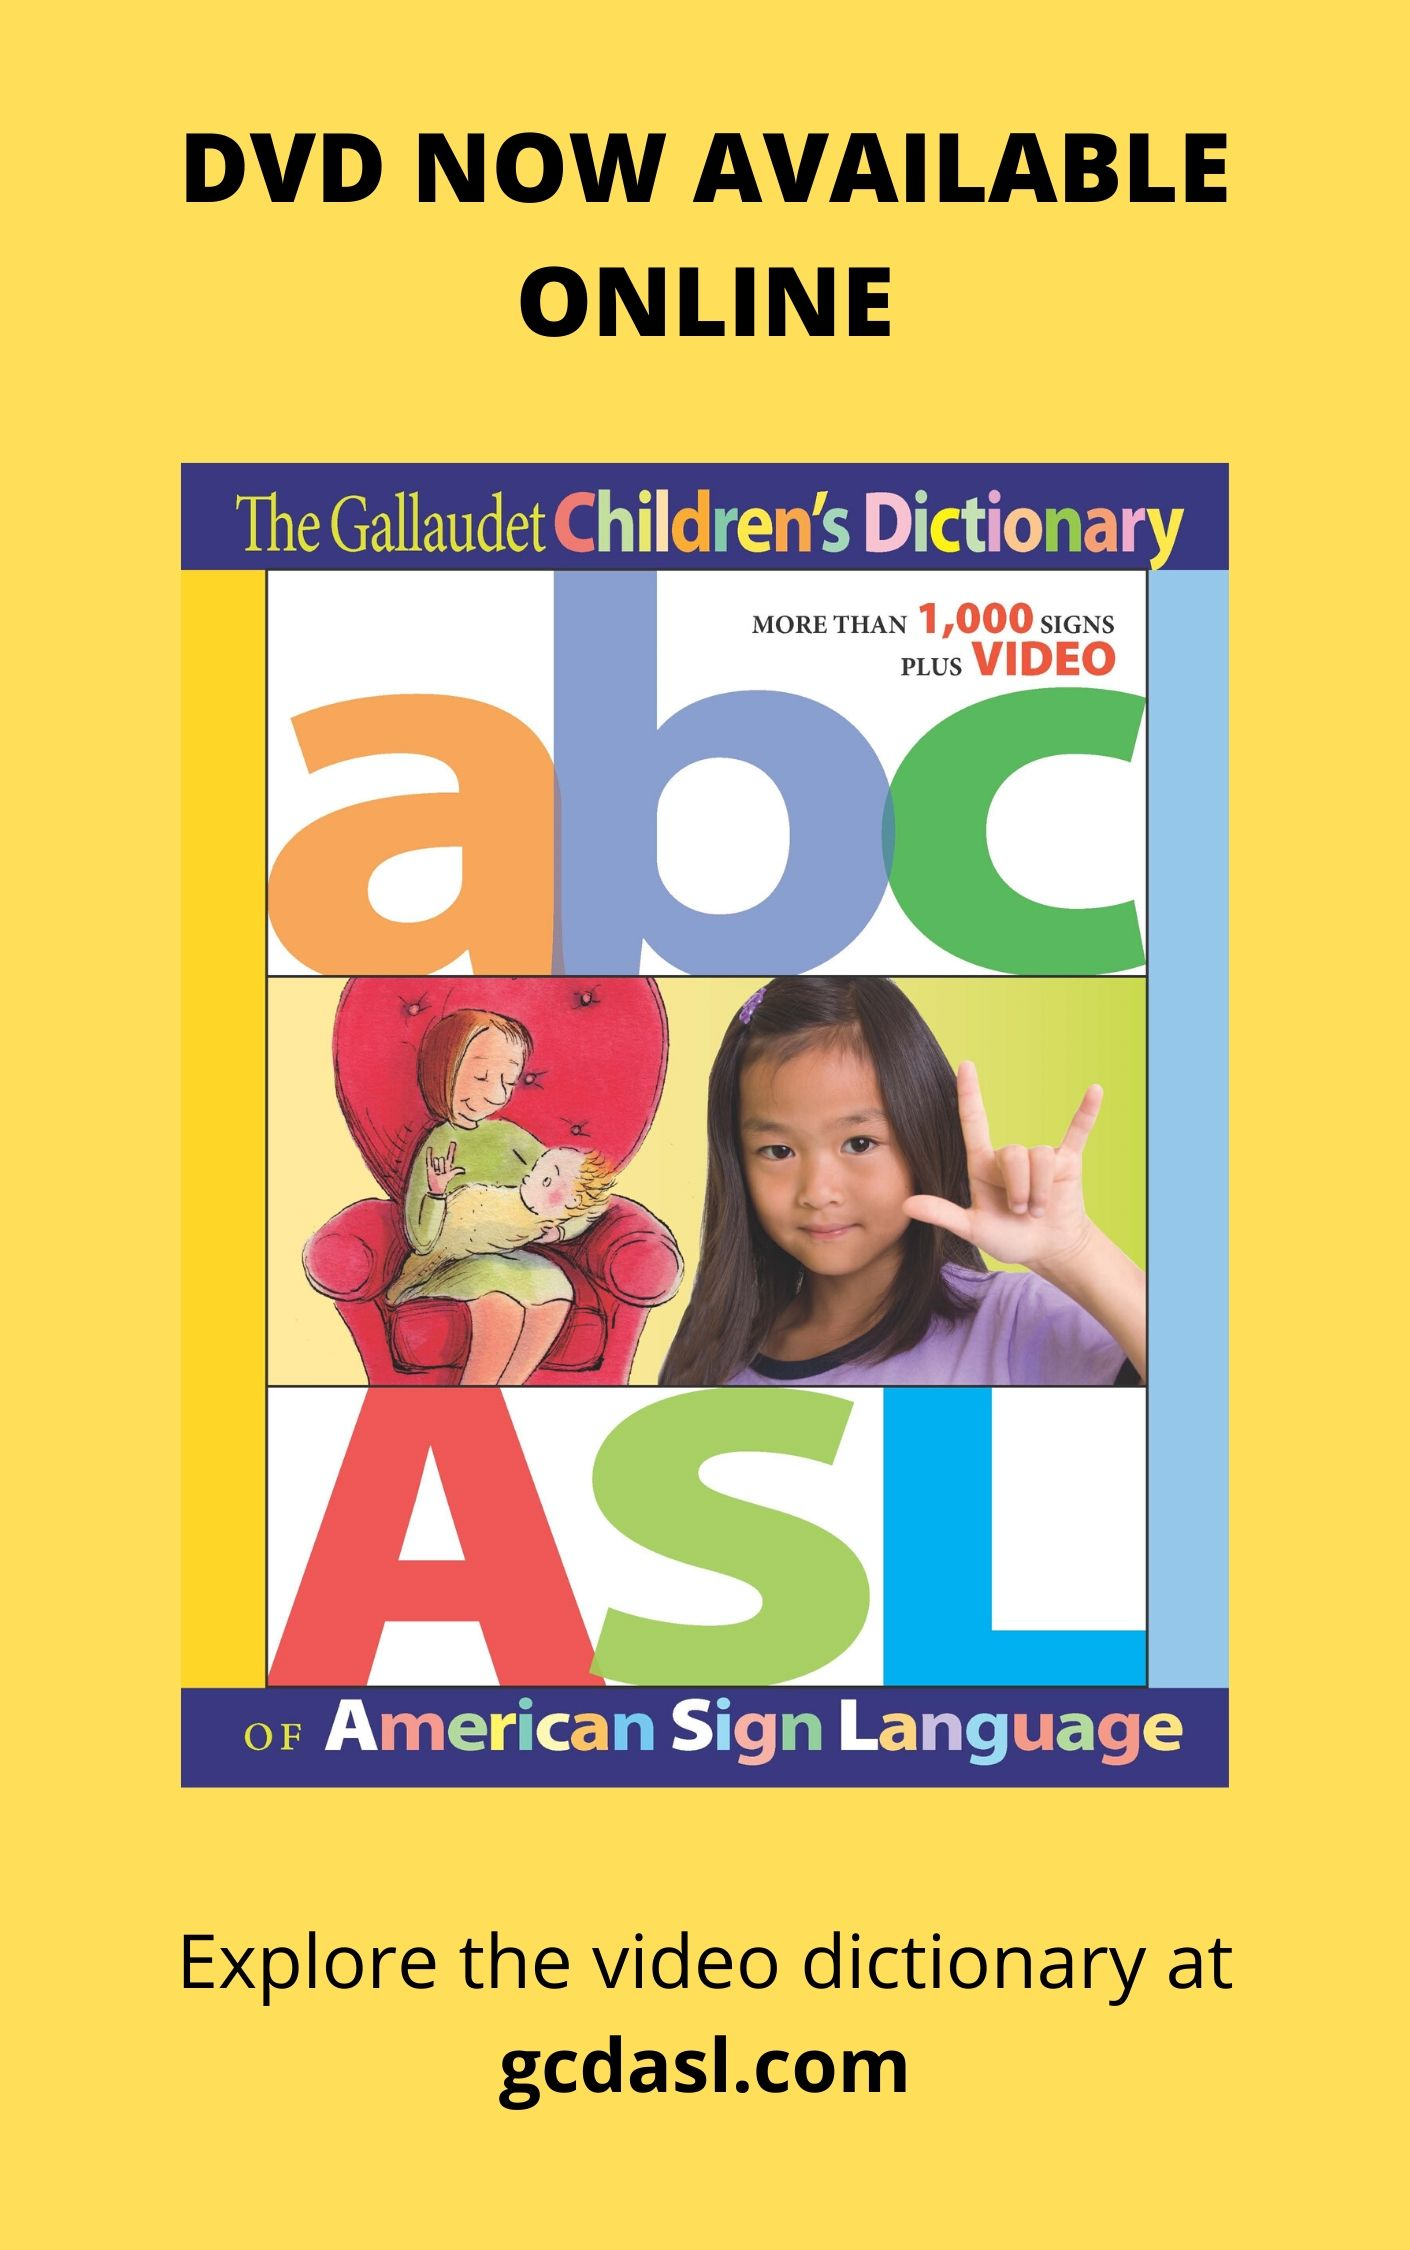 image card for The Gallaudet Children's Dictionary in American Sign Language (an ASL-English dictionary), DVD now available online at http://gcdasl.com